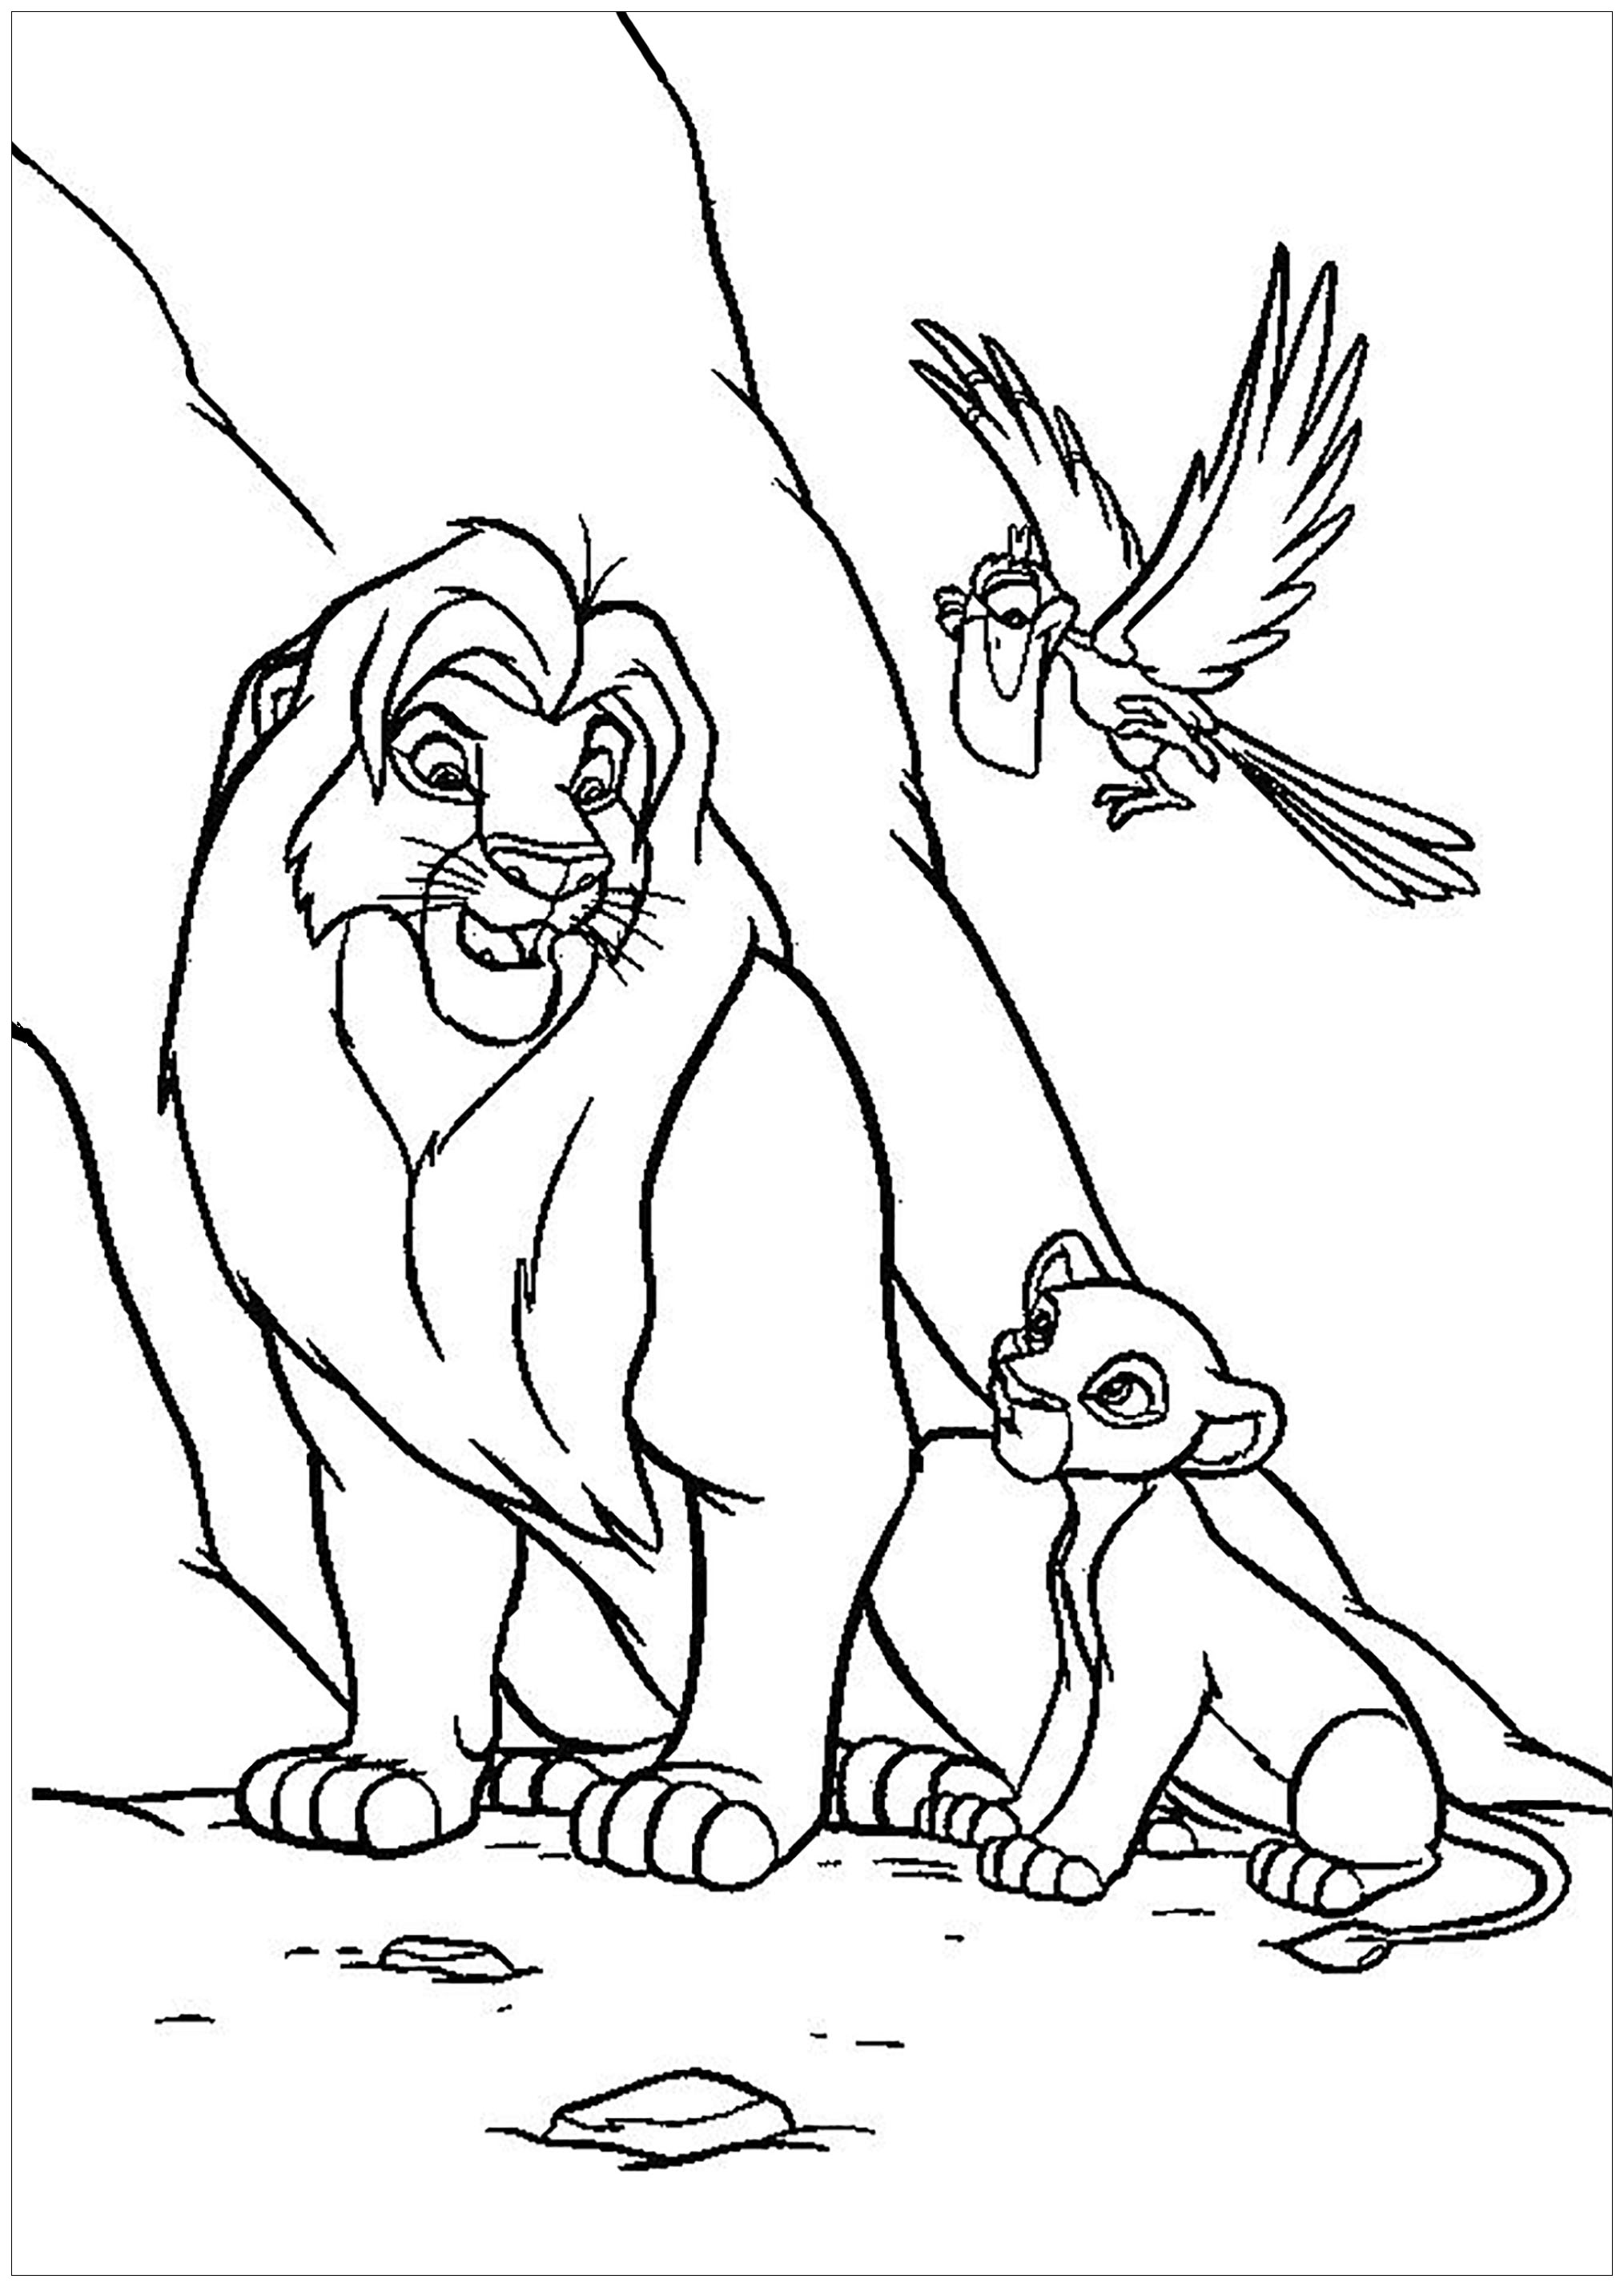 Lion King Coloring Page With Mufasa Simba And Zazu The Lion